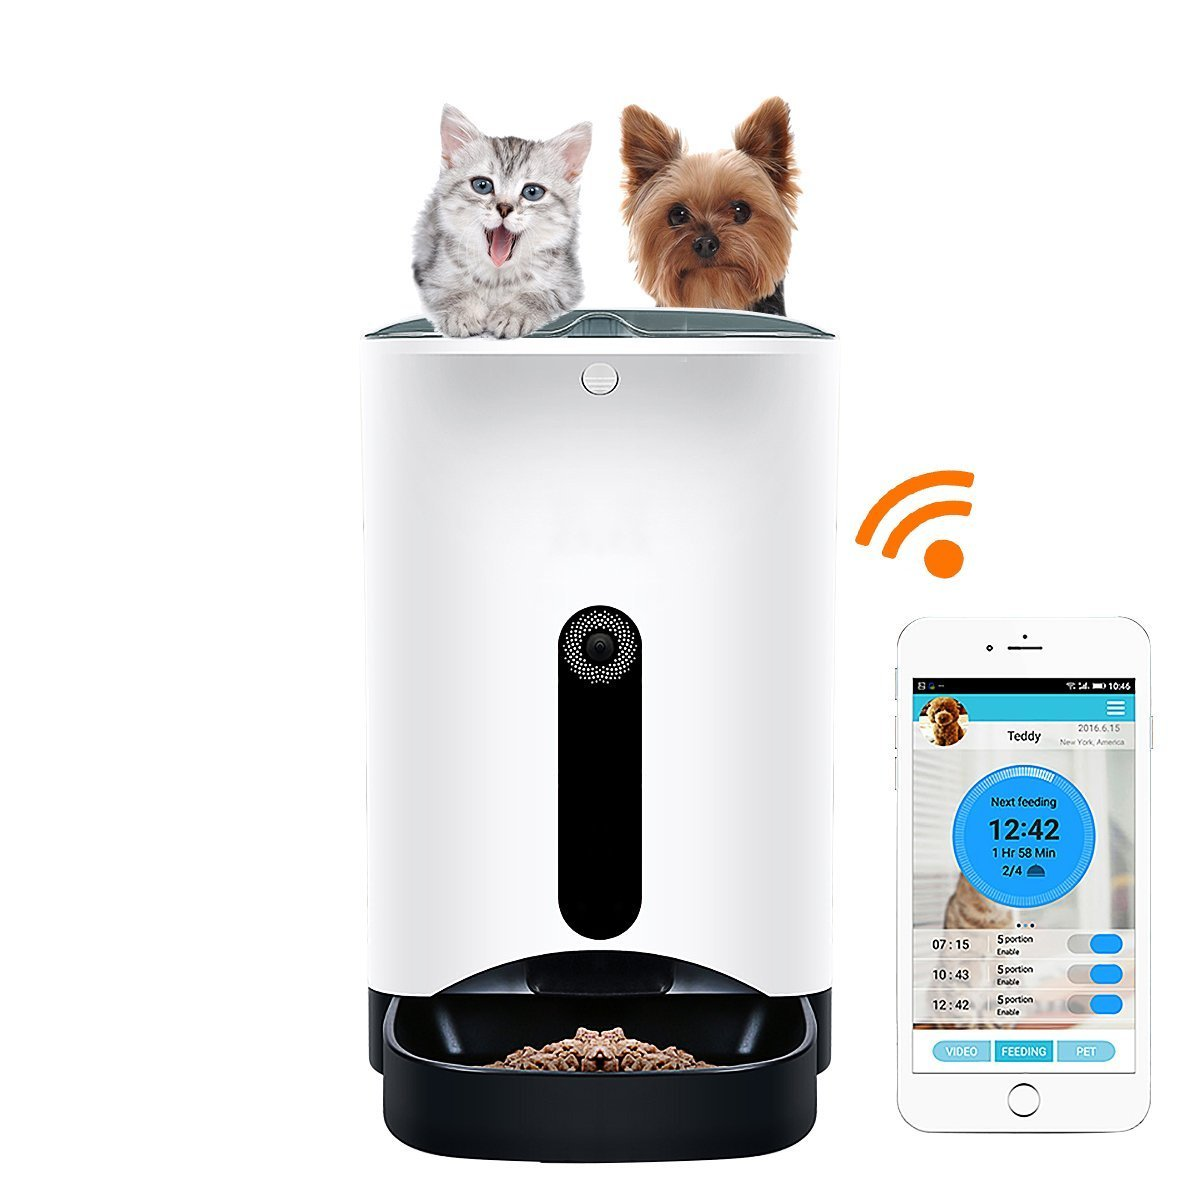 QTMY Large Wifi Remote Control Pet Smart Automatic Feeder with Camera Timer Food Dispenser for Dogs & Cats, Controlled by Smart Phone Devices by QTMY